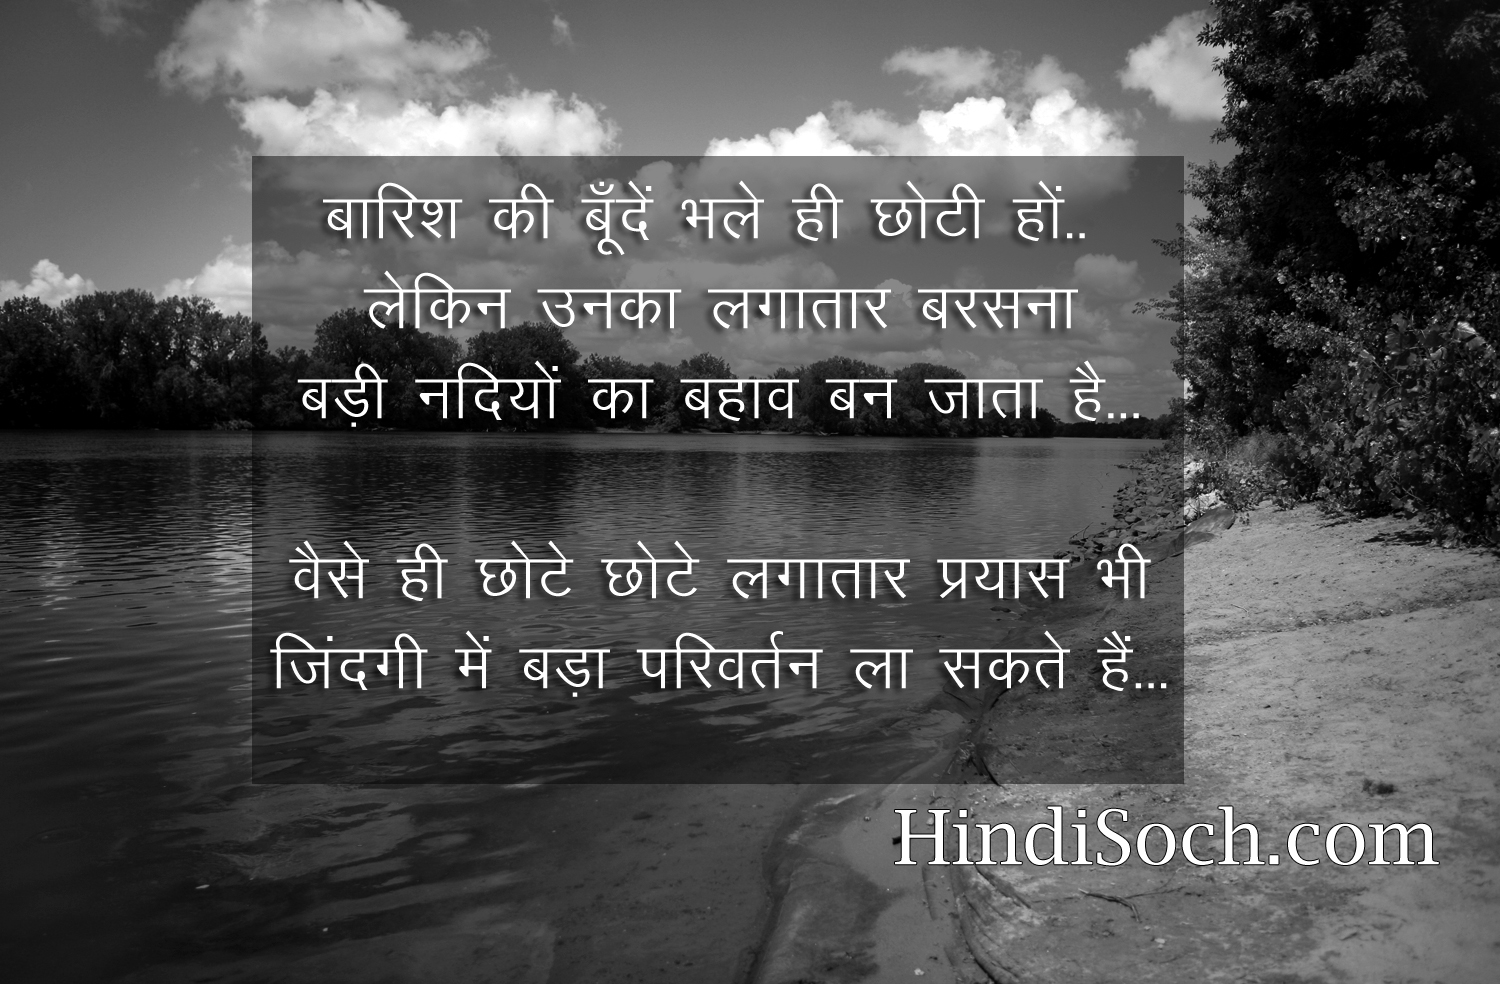 30 Life Inspirational Motivational Quotes in Hindi with Images